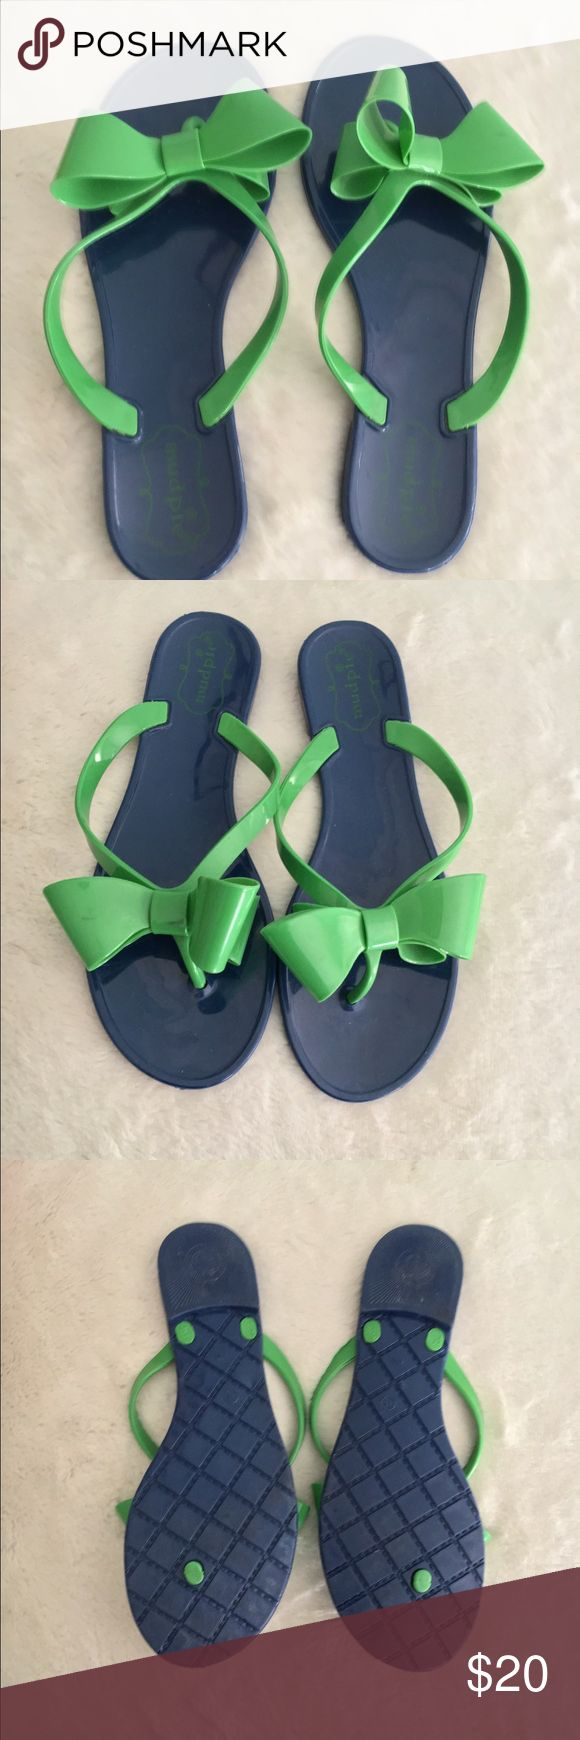 Lily Pulitzer Sandals Rubbery sandals perfect for summer! From the In the Pink store but not the Lily Pulitzer brand Lilly Pulitzer Shoes Sandals